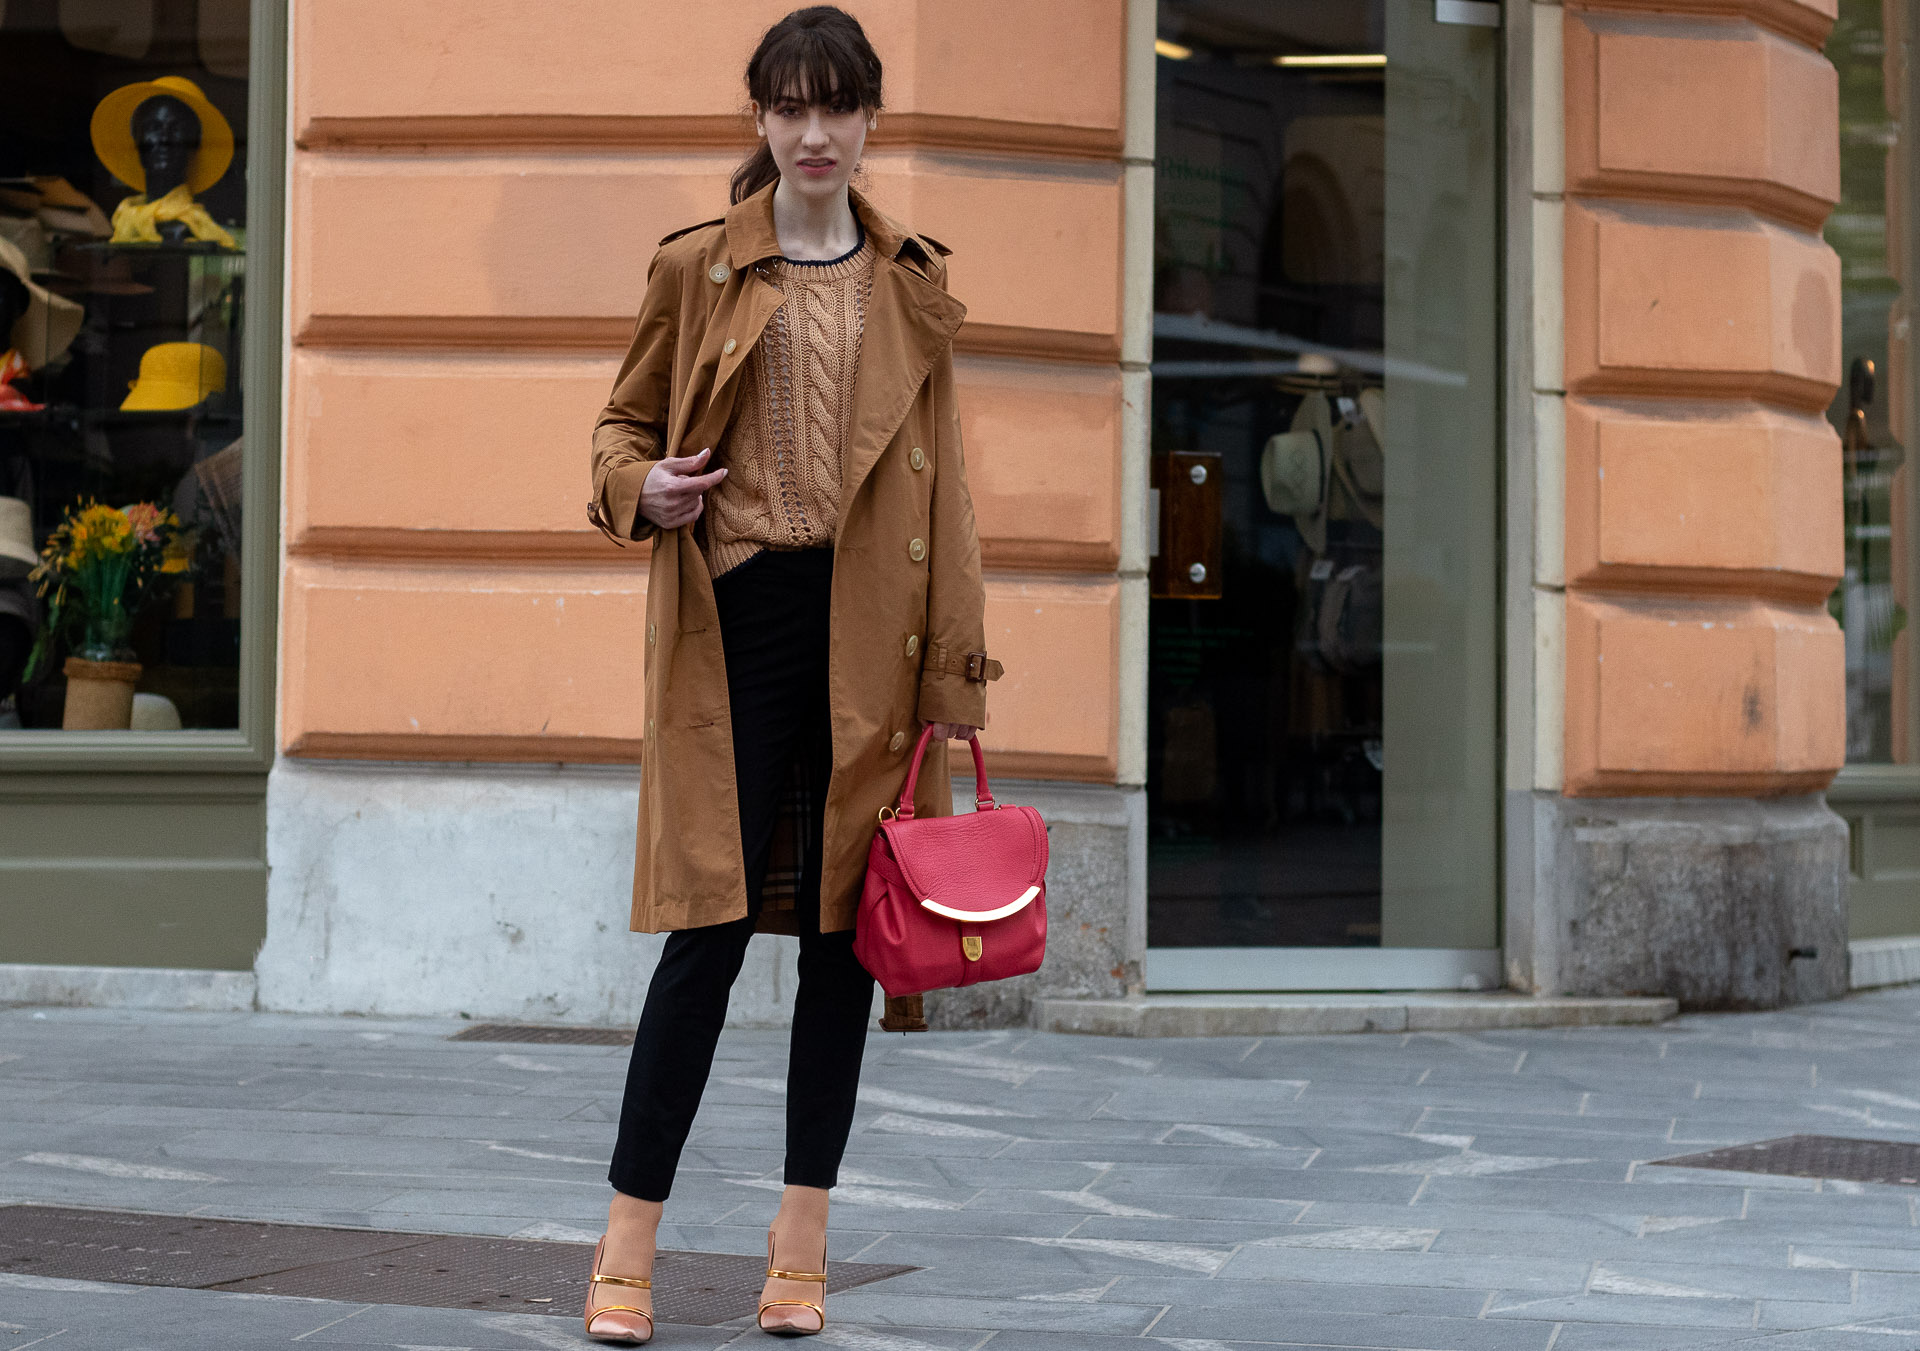 Must follow Slovenian Fashion Blogger Veronika Lipar of Brunette from Wall Street wearing camel Burberry Kensington trench coat Mango cable knit sweater black slacks blush Malone Souliers mules pink top handle bag low ponytail bangs going to the office